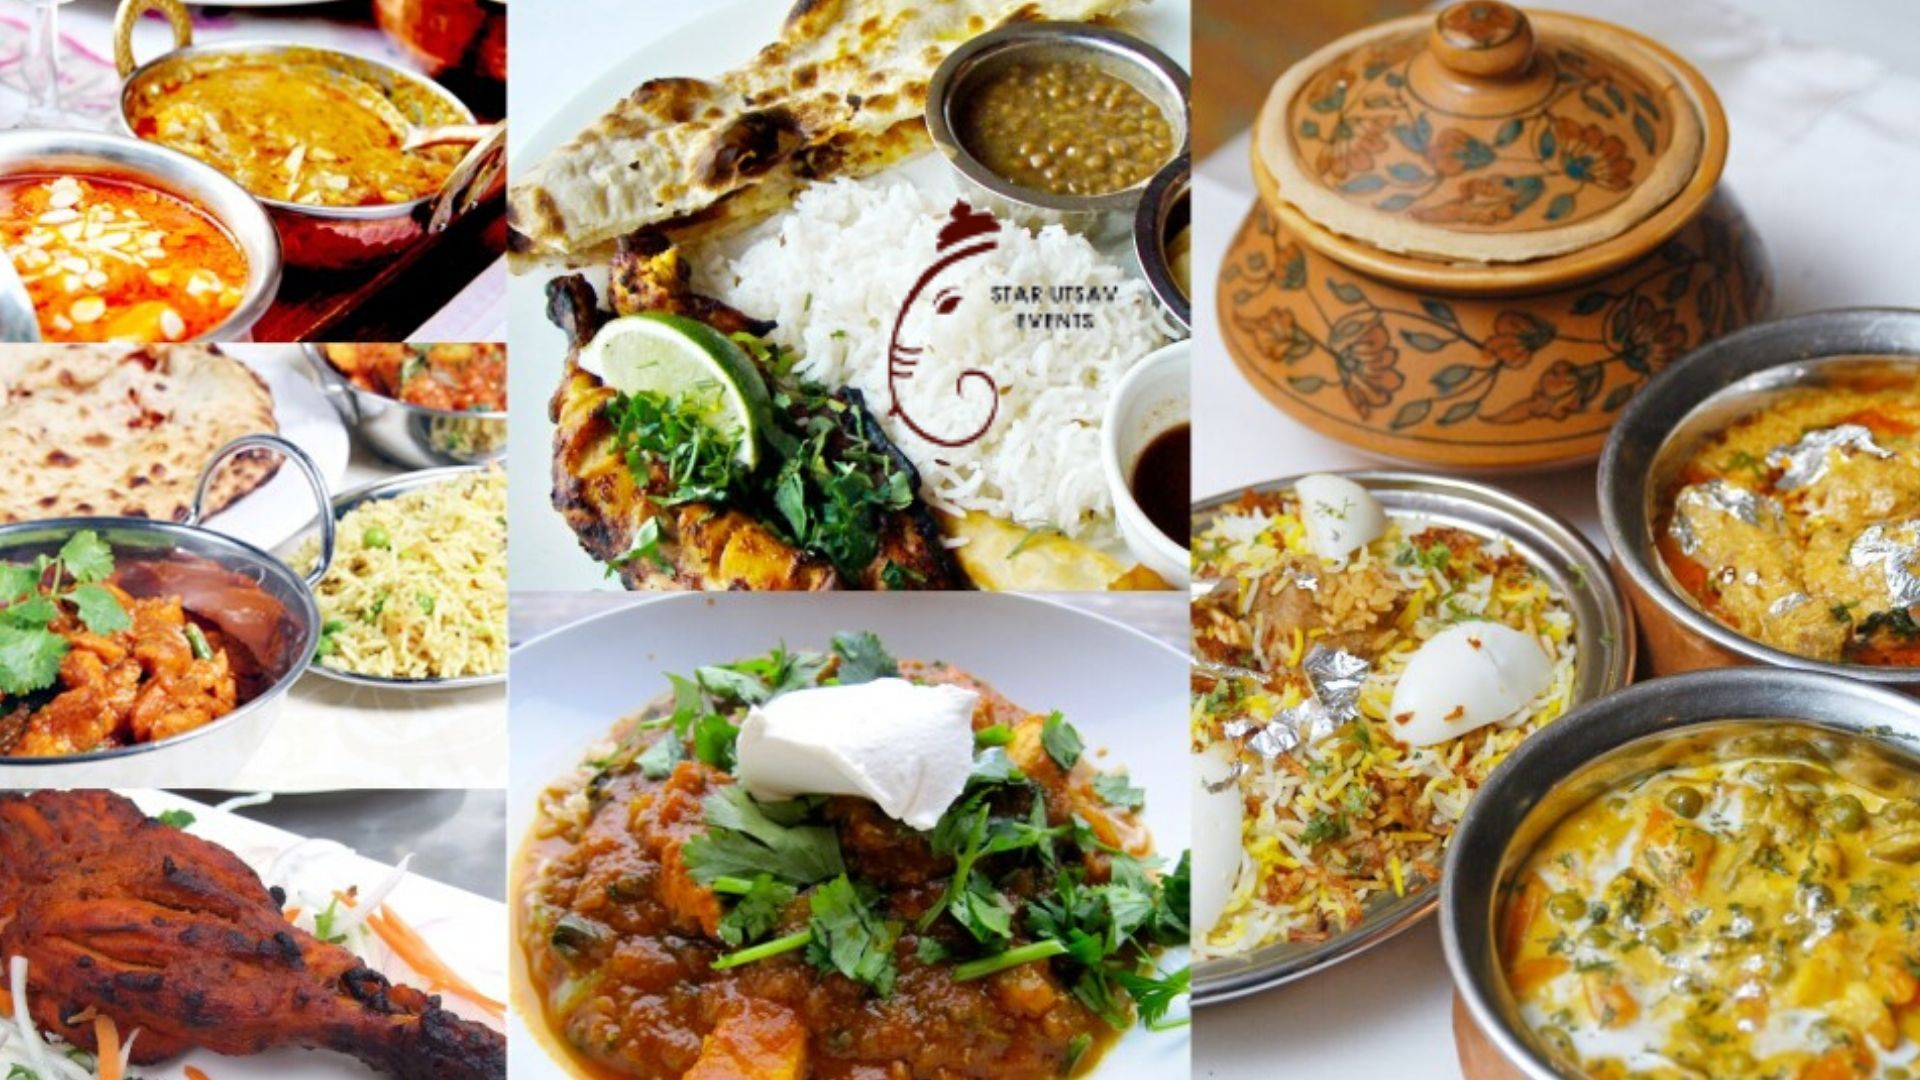 Marriage Catering Services In 2020 Indian Food Catering Baby Shower Catering Wedding Food Catering